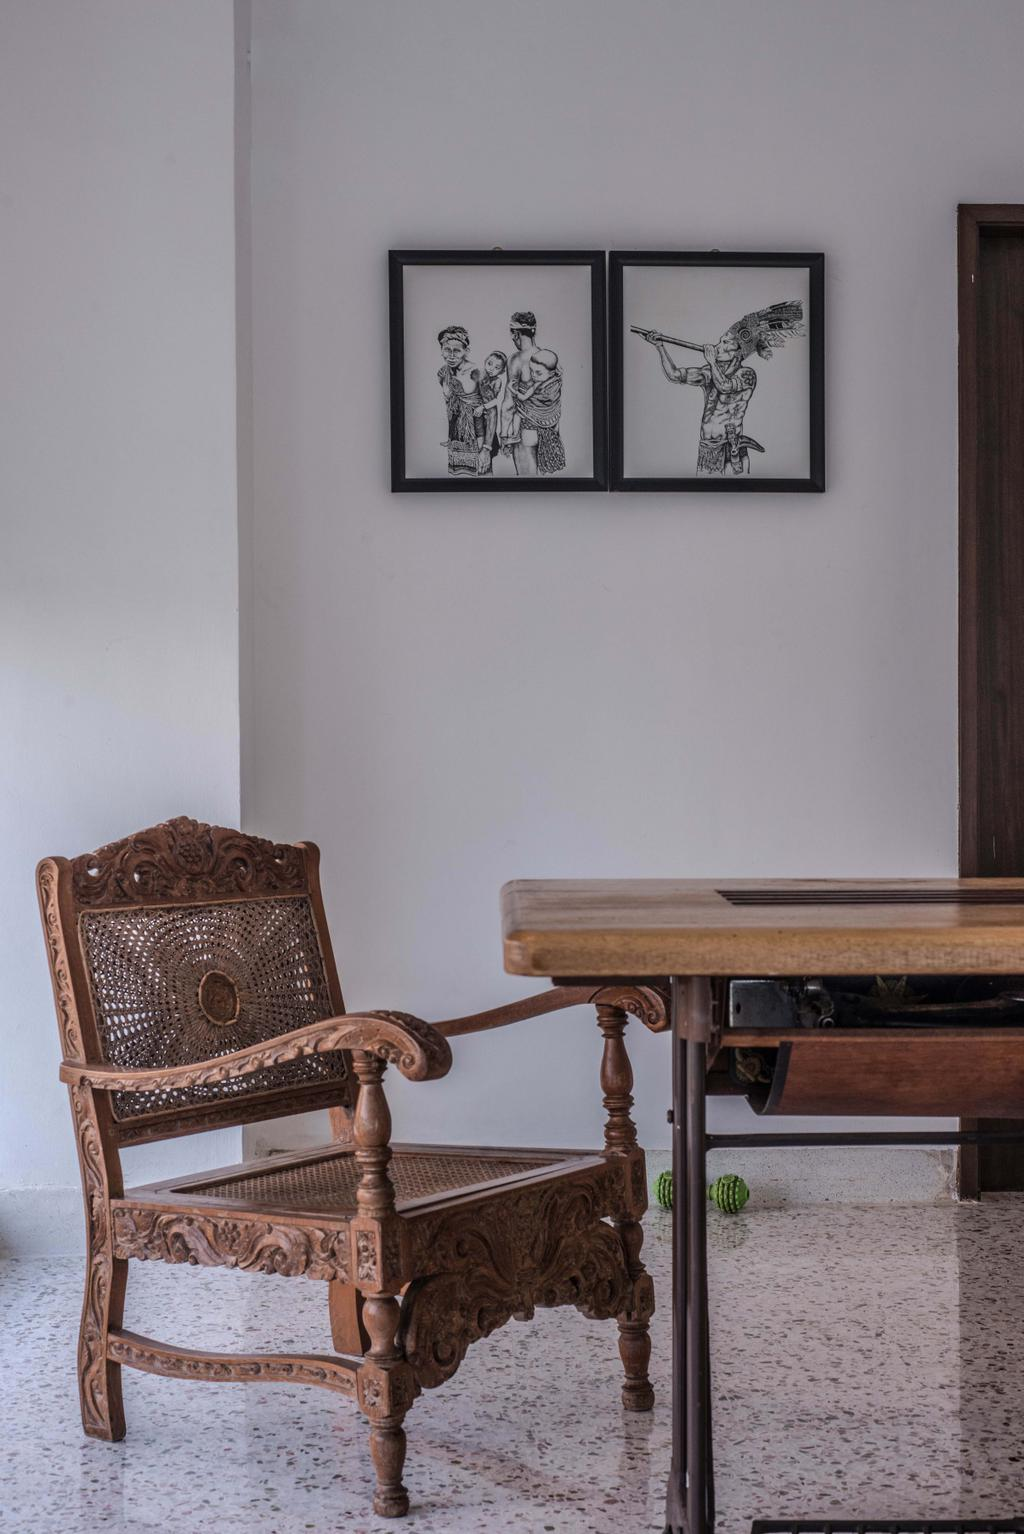 Vintage, Landed, Dining Room, Tasek House, Architect, Code Red Studio, Wood, Brown, Antique, Oriental, Wall Art, Wall Decor, Wall Frames, Photo Frames, Chair, Furniture